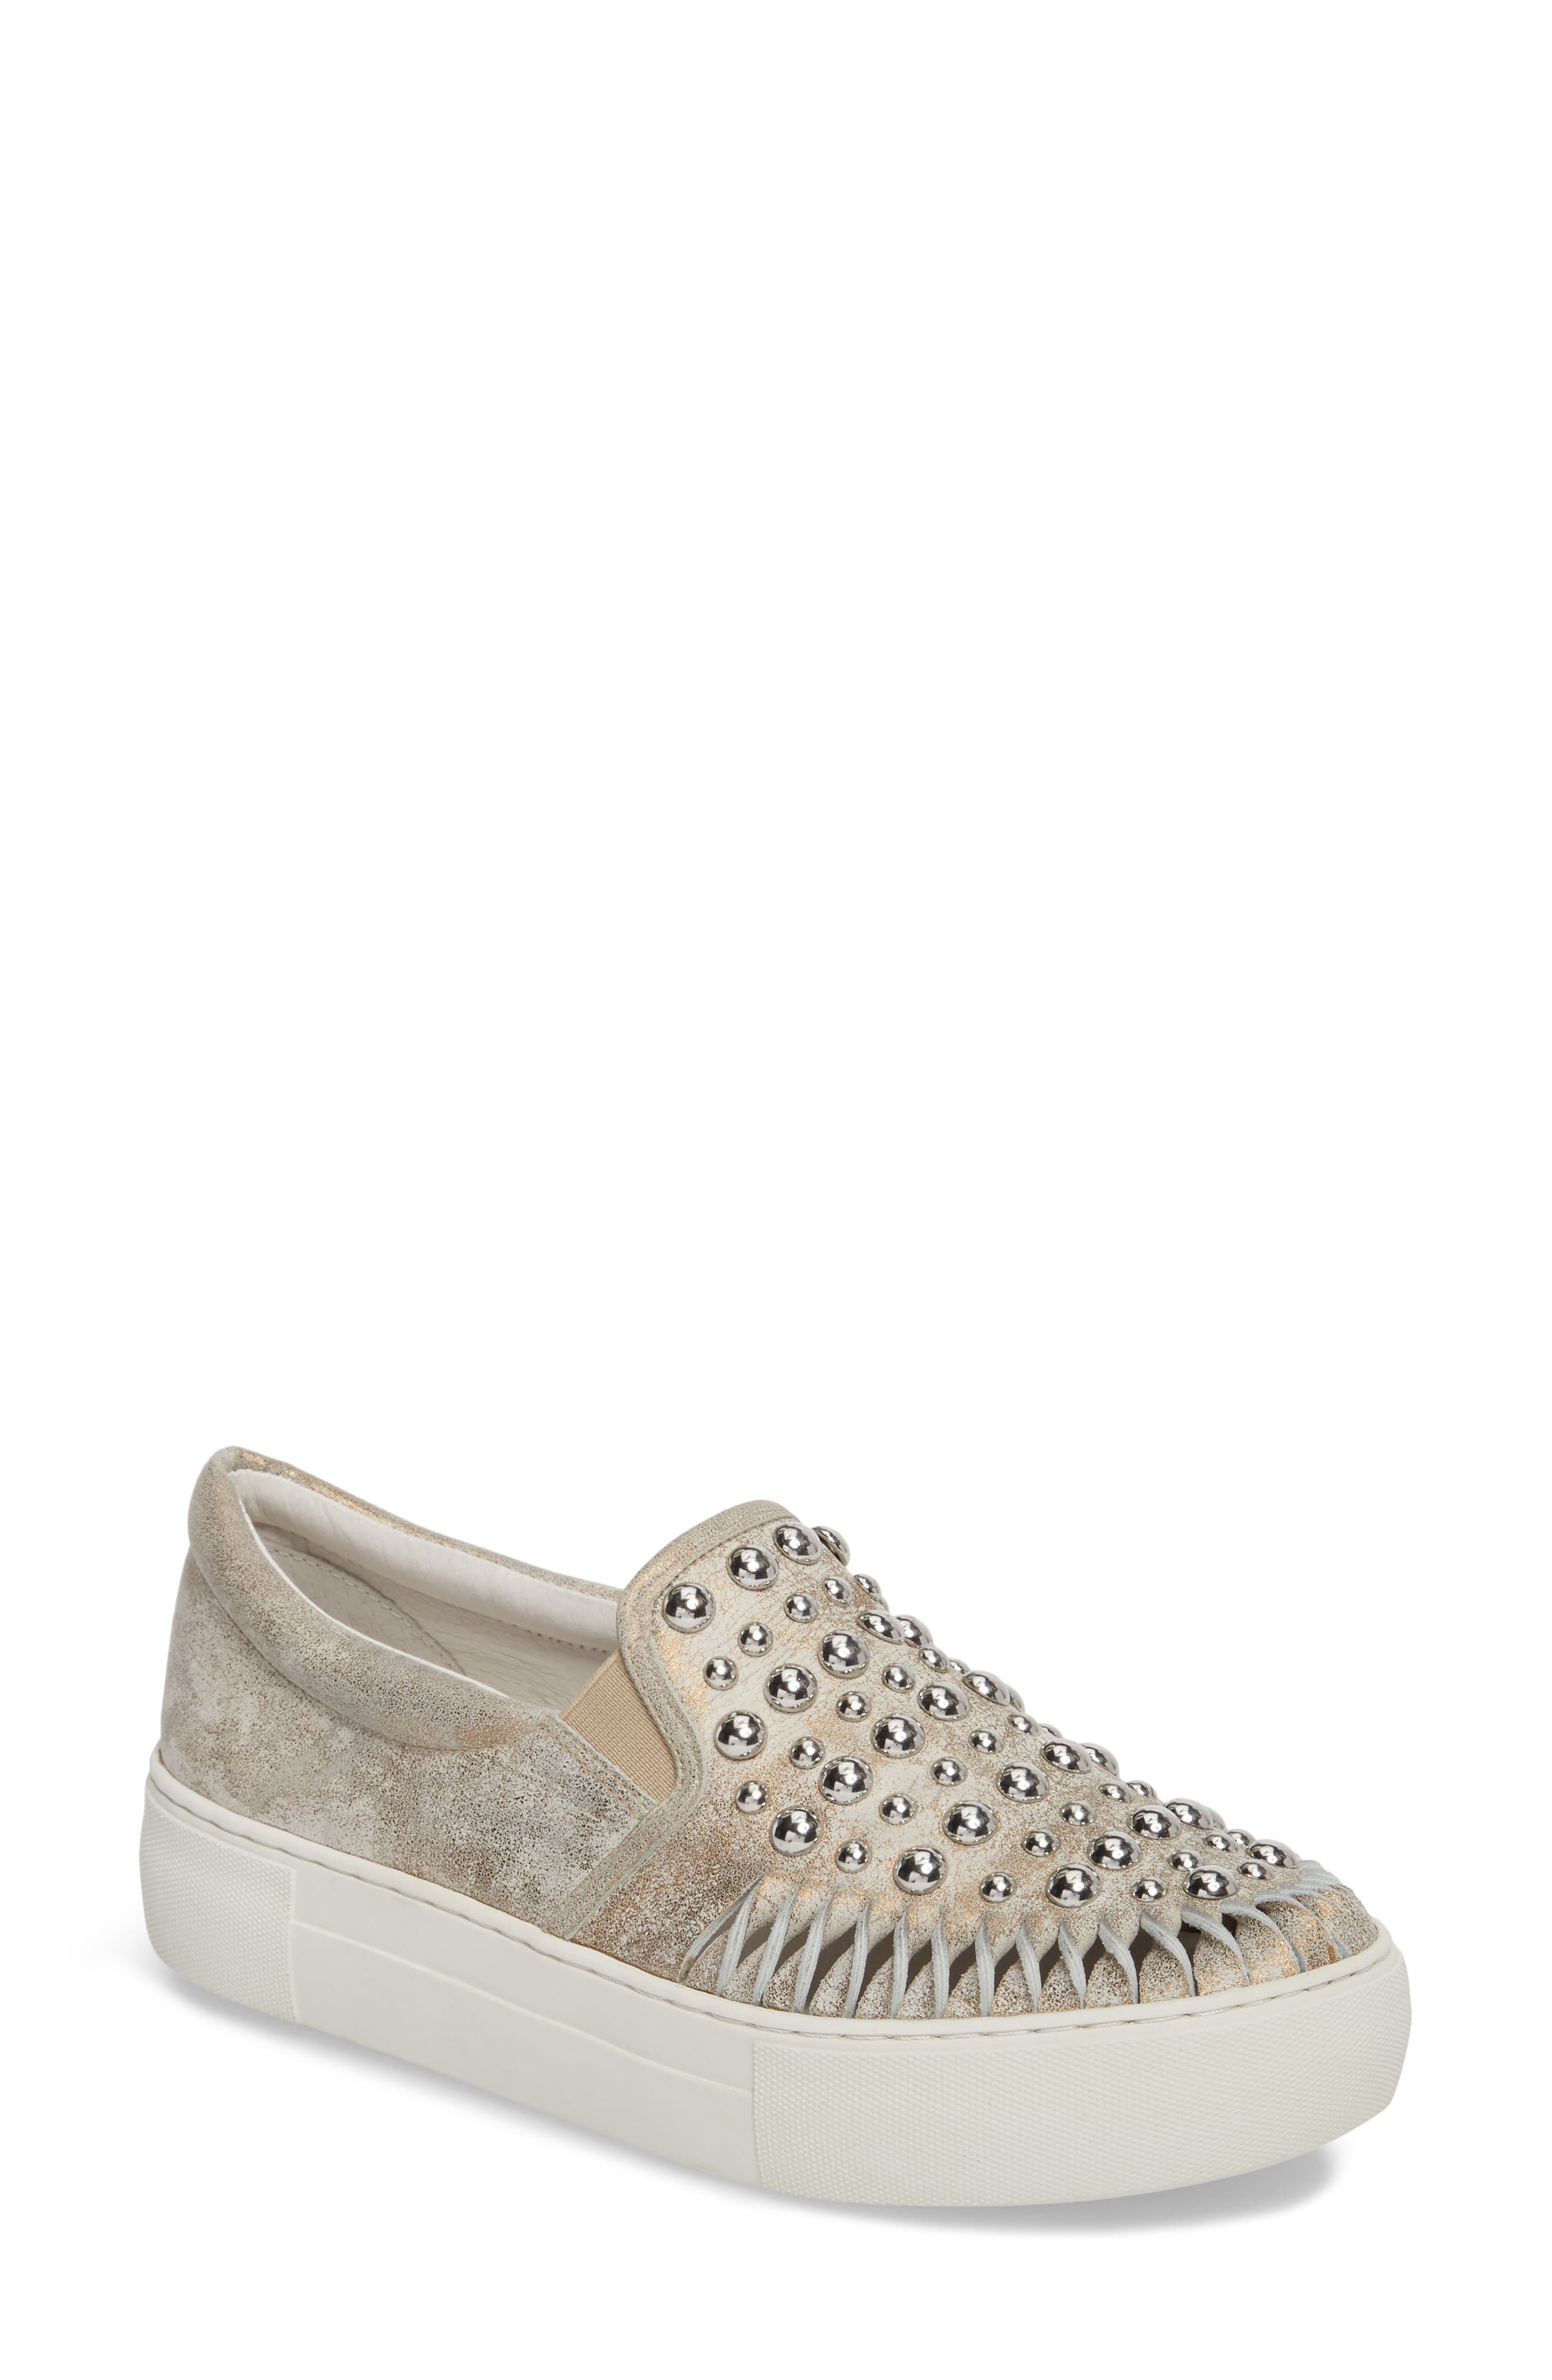 AZT Studded Slip-On Sneaker,                         Main,                         color, Bronze Leather